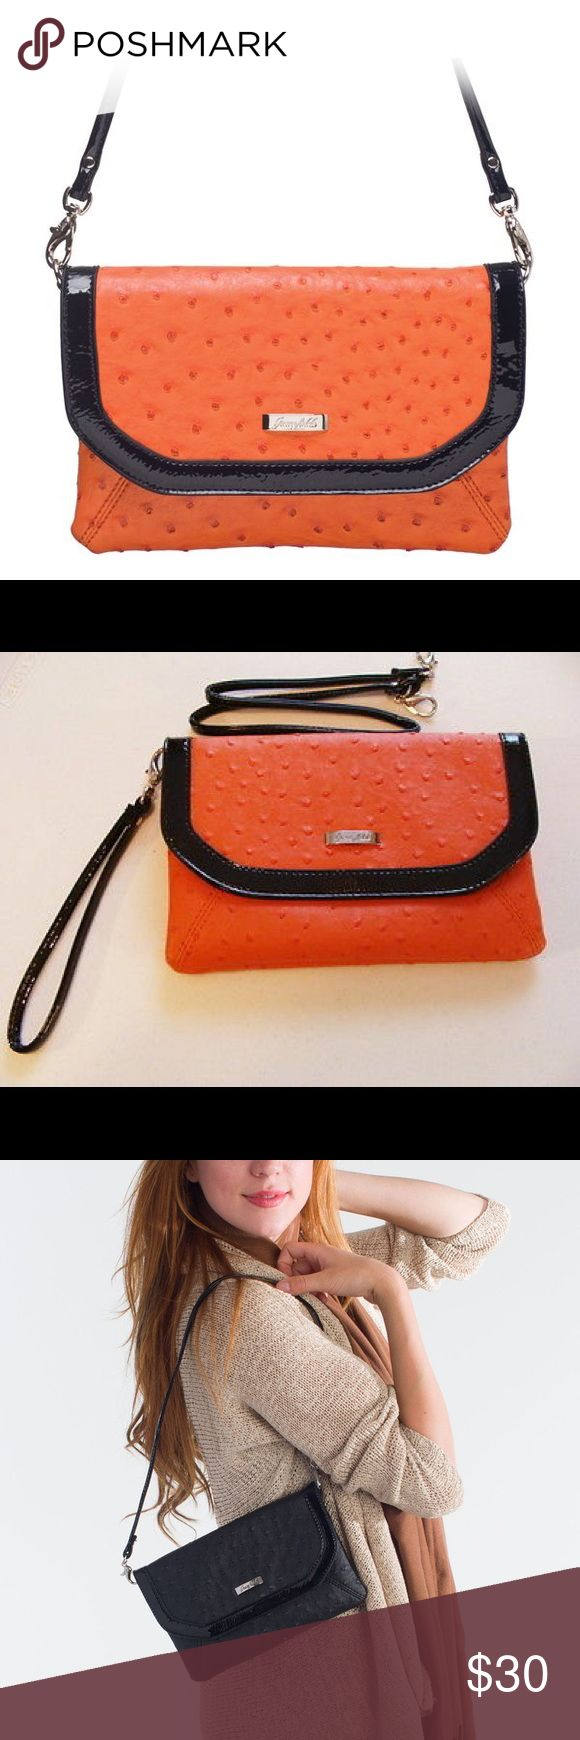 Orange and black clutch NWT Faux Ostrich leather clutch - patent leather trim. Also has a long strap to use as a shoulder or cross body bag. Big enough to fit your cell phone and anything else you need for a night out! From a smoke free home. Can use THREE ways! Stock photos used as this is new in package. grace adele Bags Clutches & Wristlets